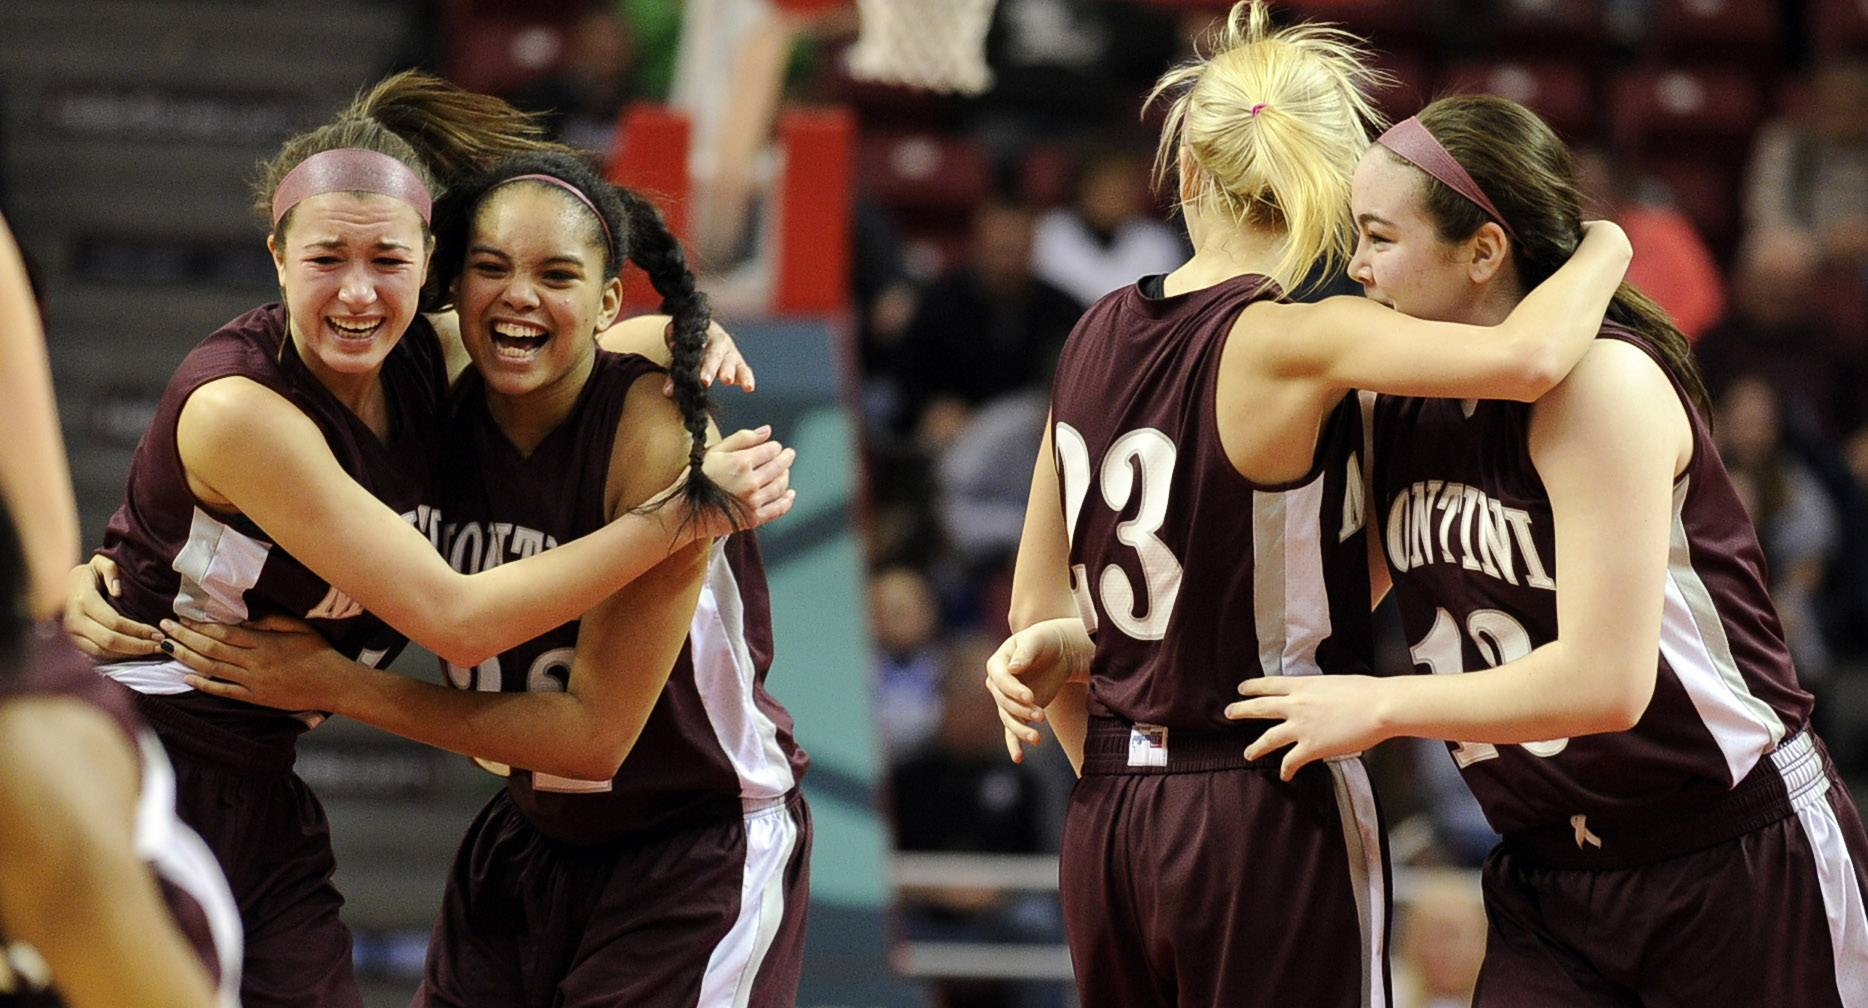 Montini player Kelsey Bogdan celebrates with Rainey Kuykendall, Lea Kerstein and Kaylee Bambule after defeating Burlington Central Friday to advance to the Class 3A state basketball championship in Normal.